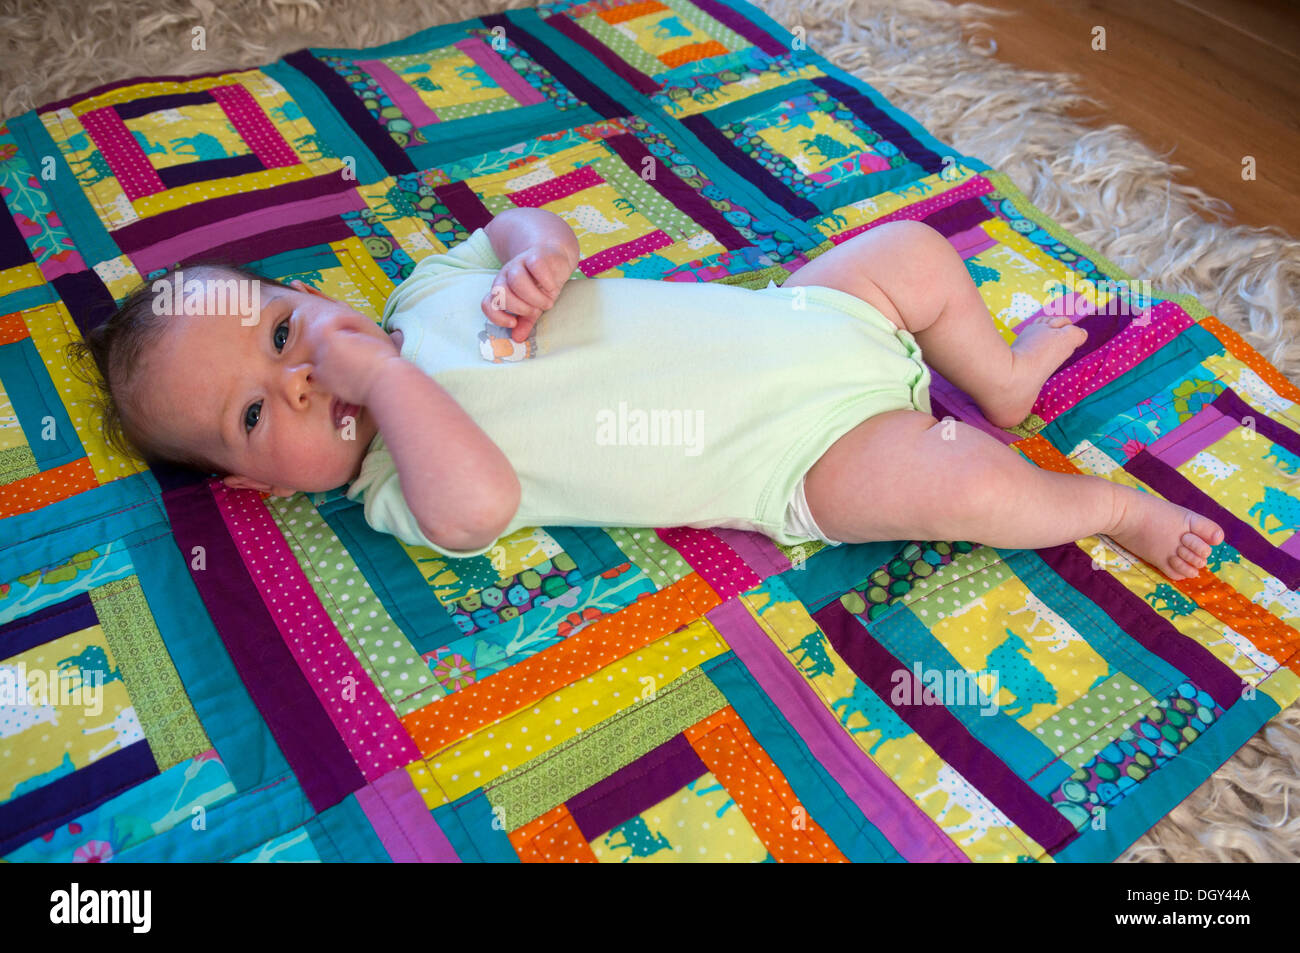 Little baby girl lying down on a colourful patchwork quilt looking ... : colourful patchwork quilt - Adamdwight.com